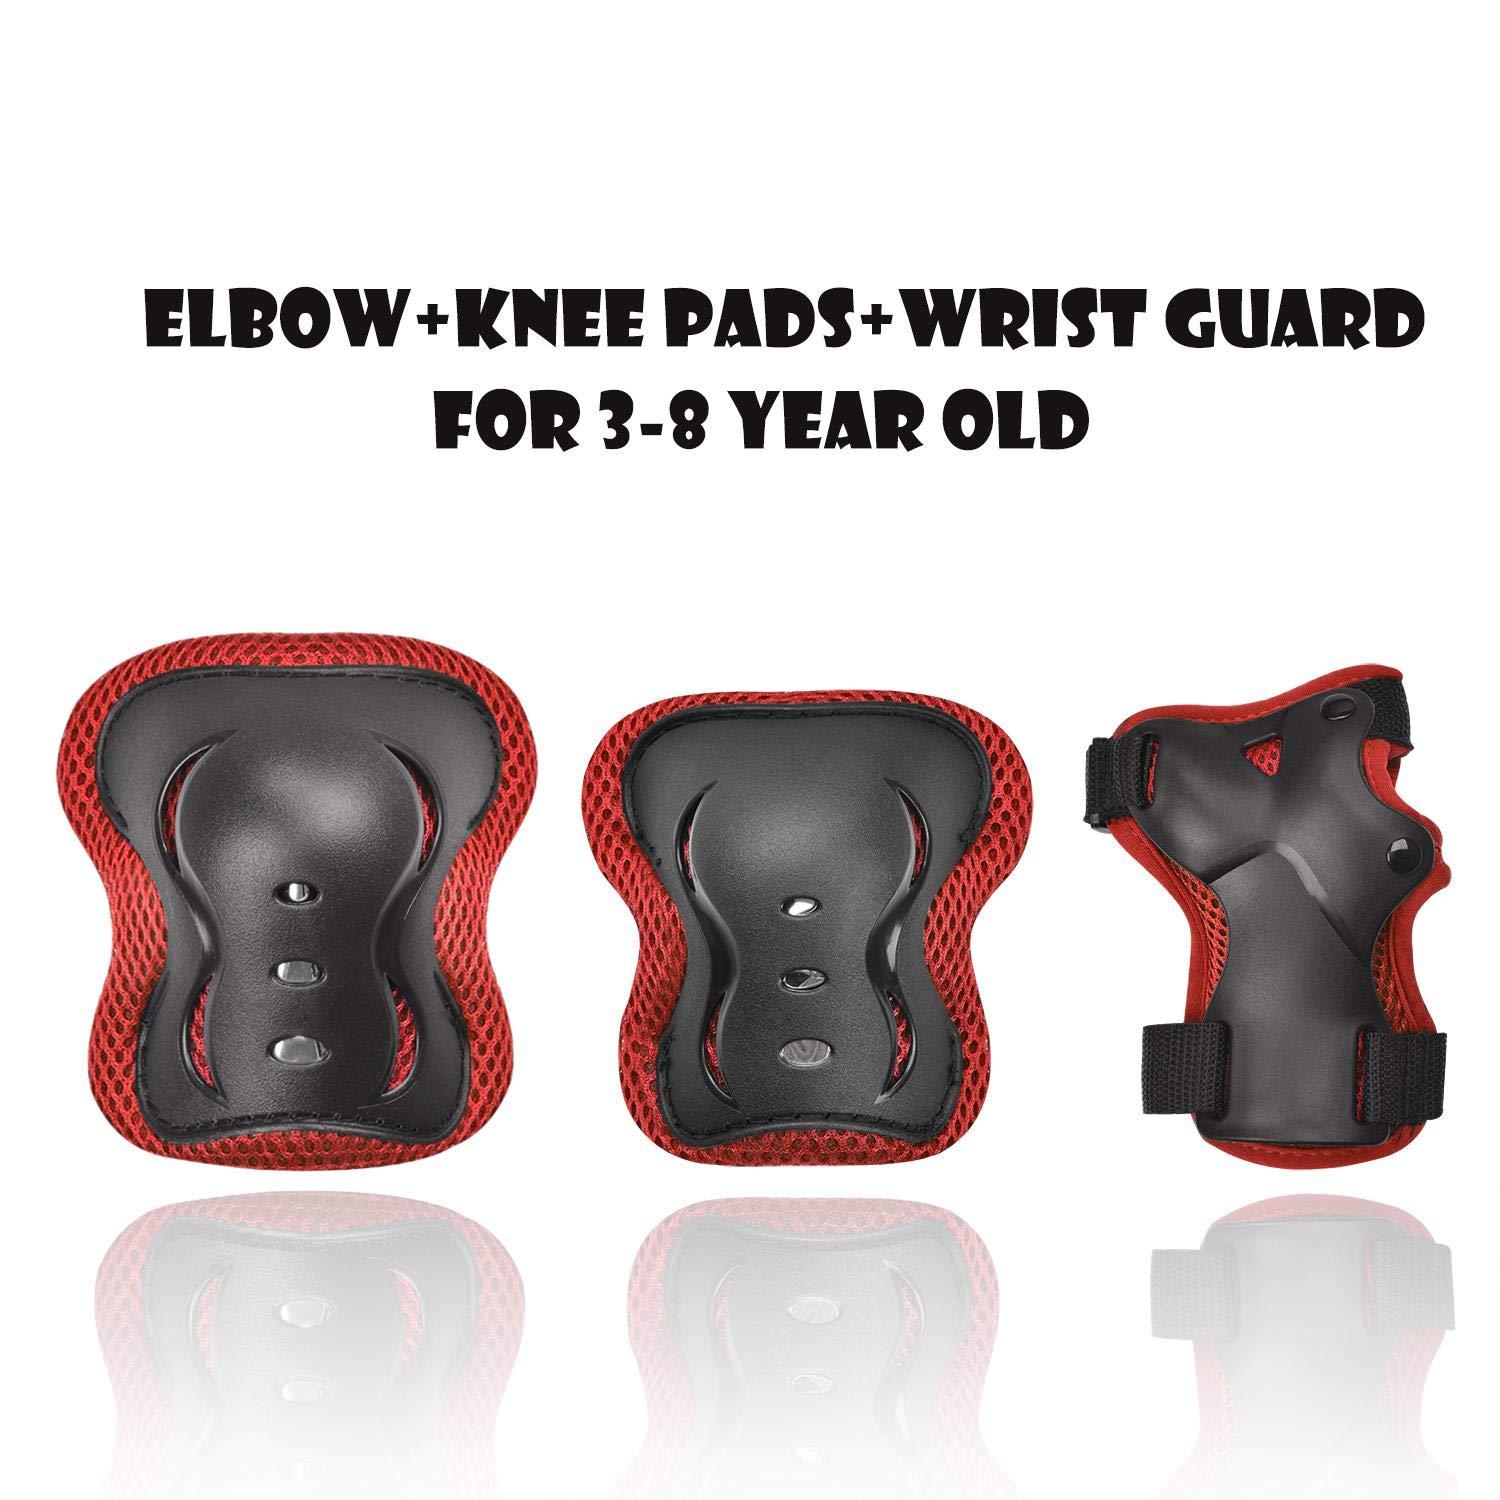 Kids Adjustable Comfortable Knee Pads and Elbow Pads with Wrist Guards Youth Protective Gear Set for Biking, Riding, Cycling and Multi Sports Safety Protection: Scooter, Skateboard, inline skatings